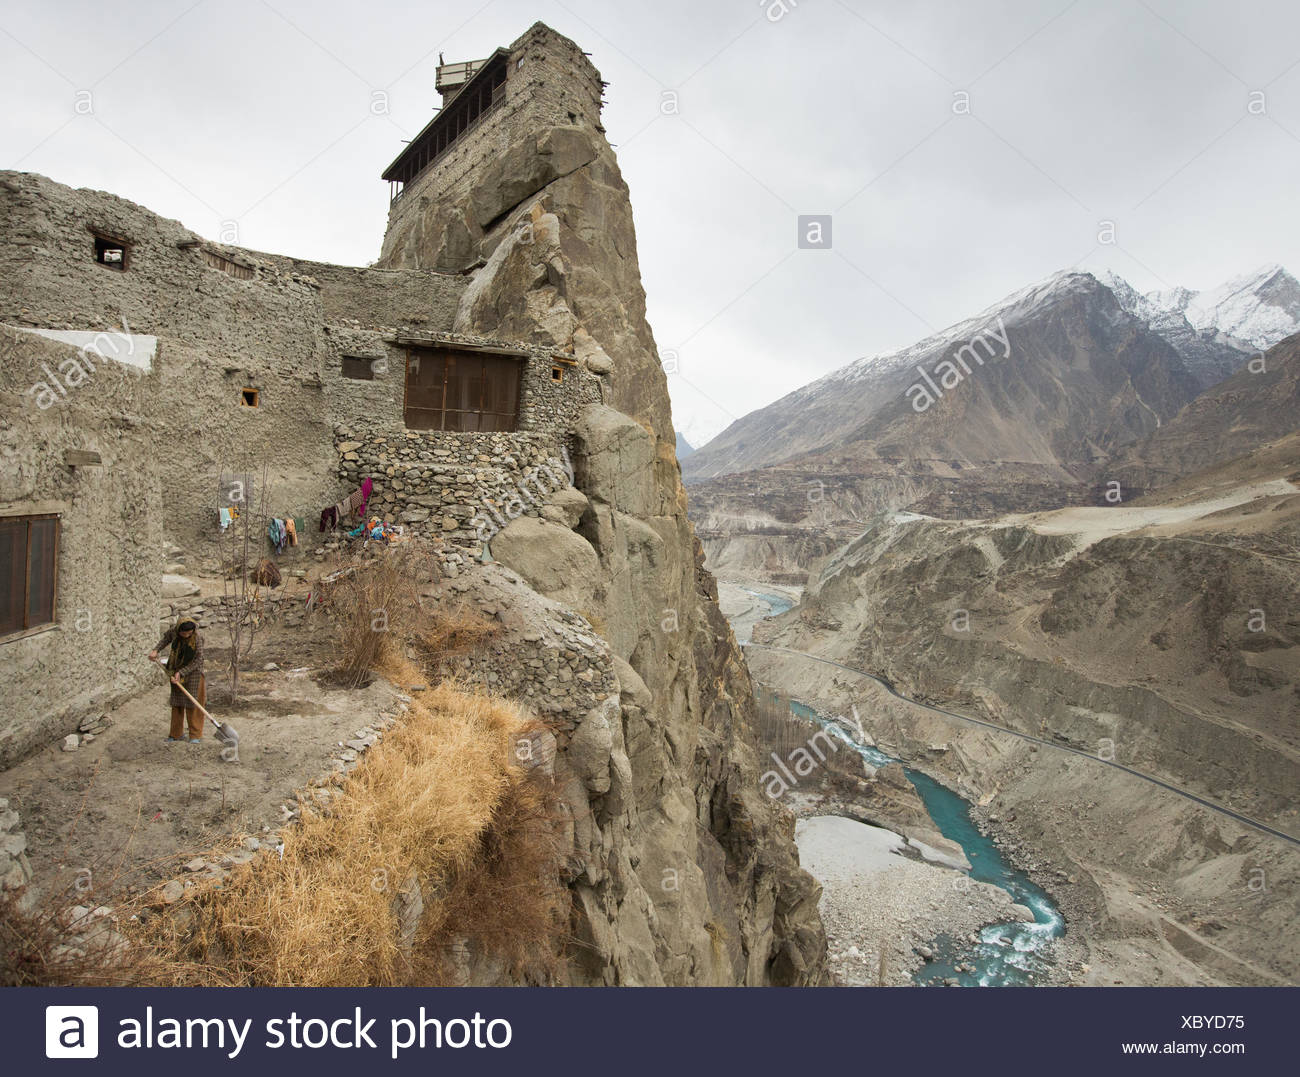 Below the Altit fort and above the Hunza river, a woman tends to her potato field. - Stock Image